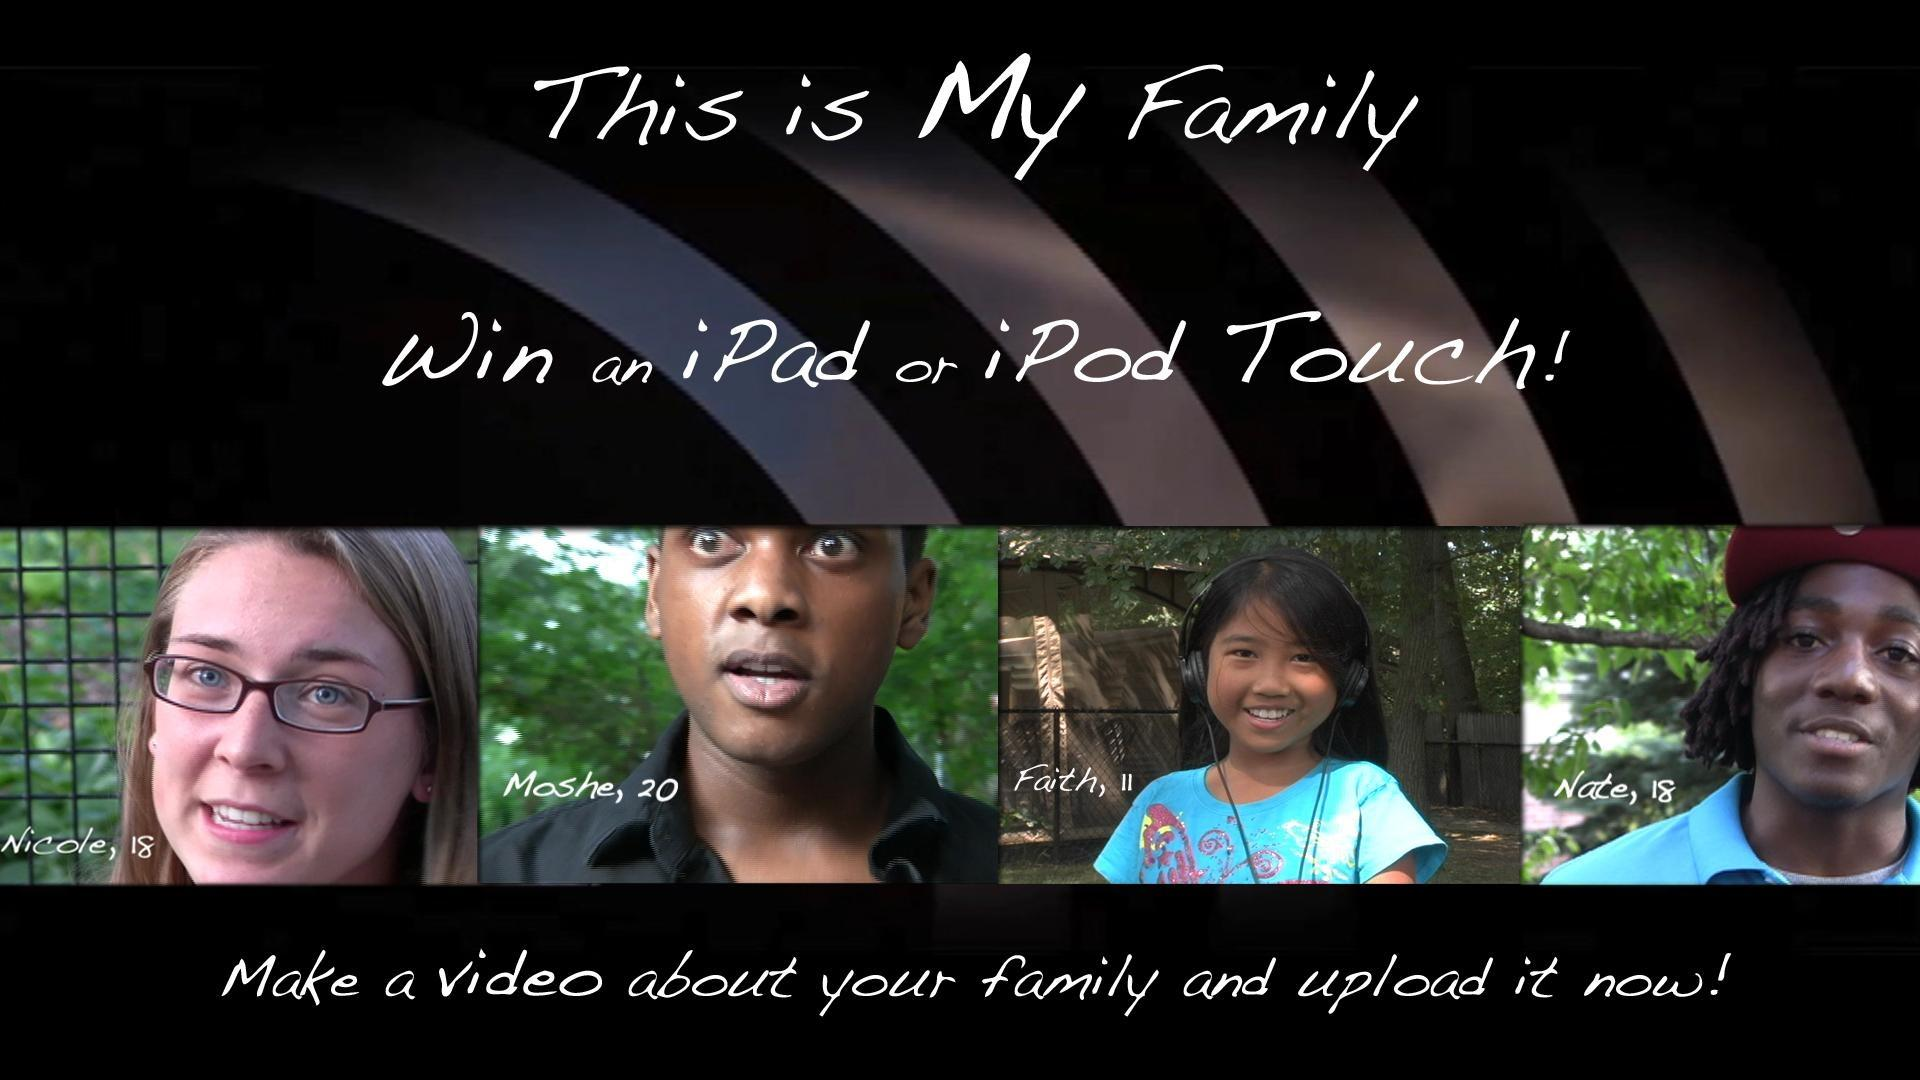 This Is My Family - Submit Your Videos